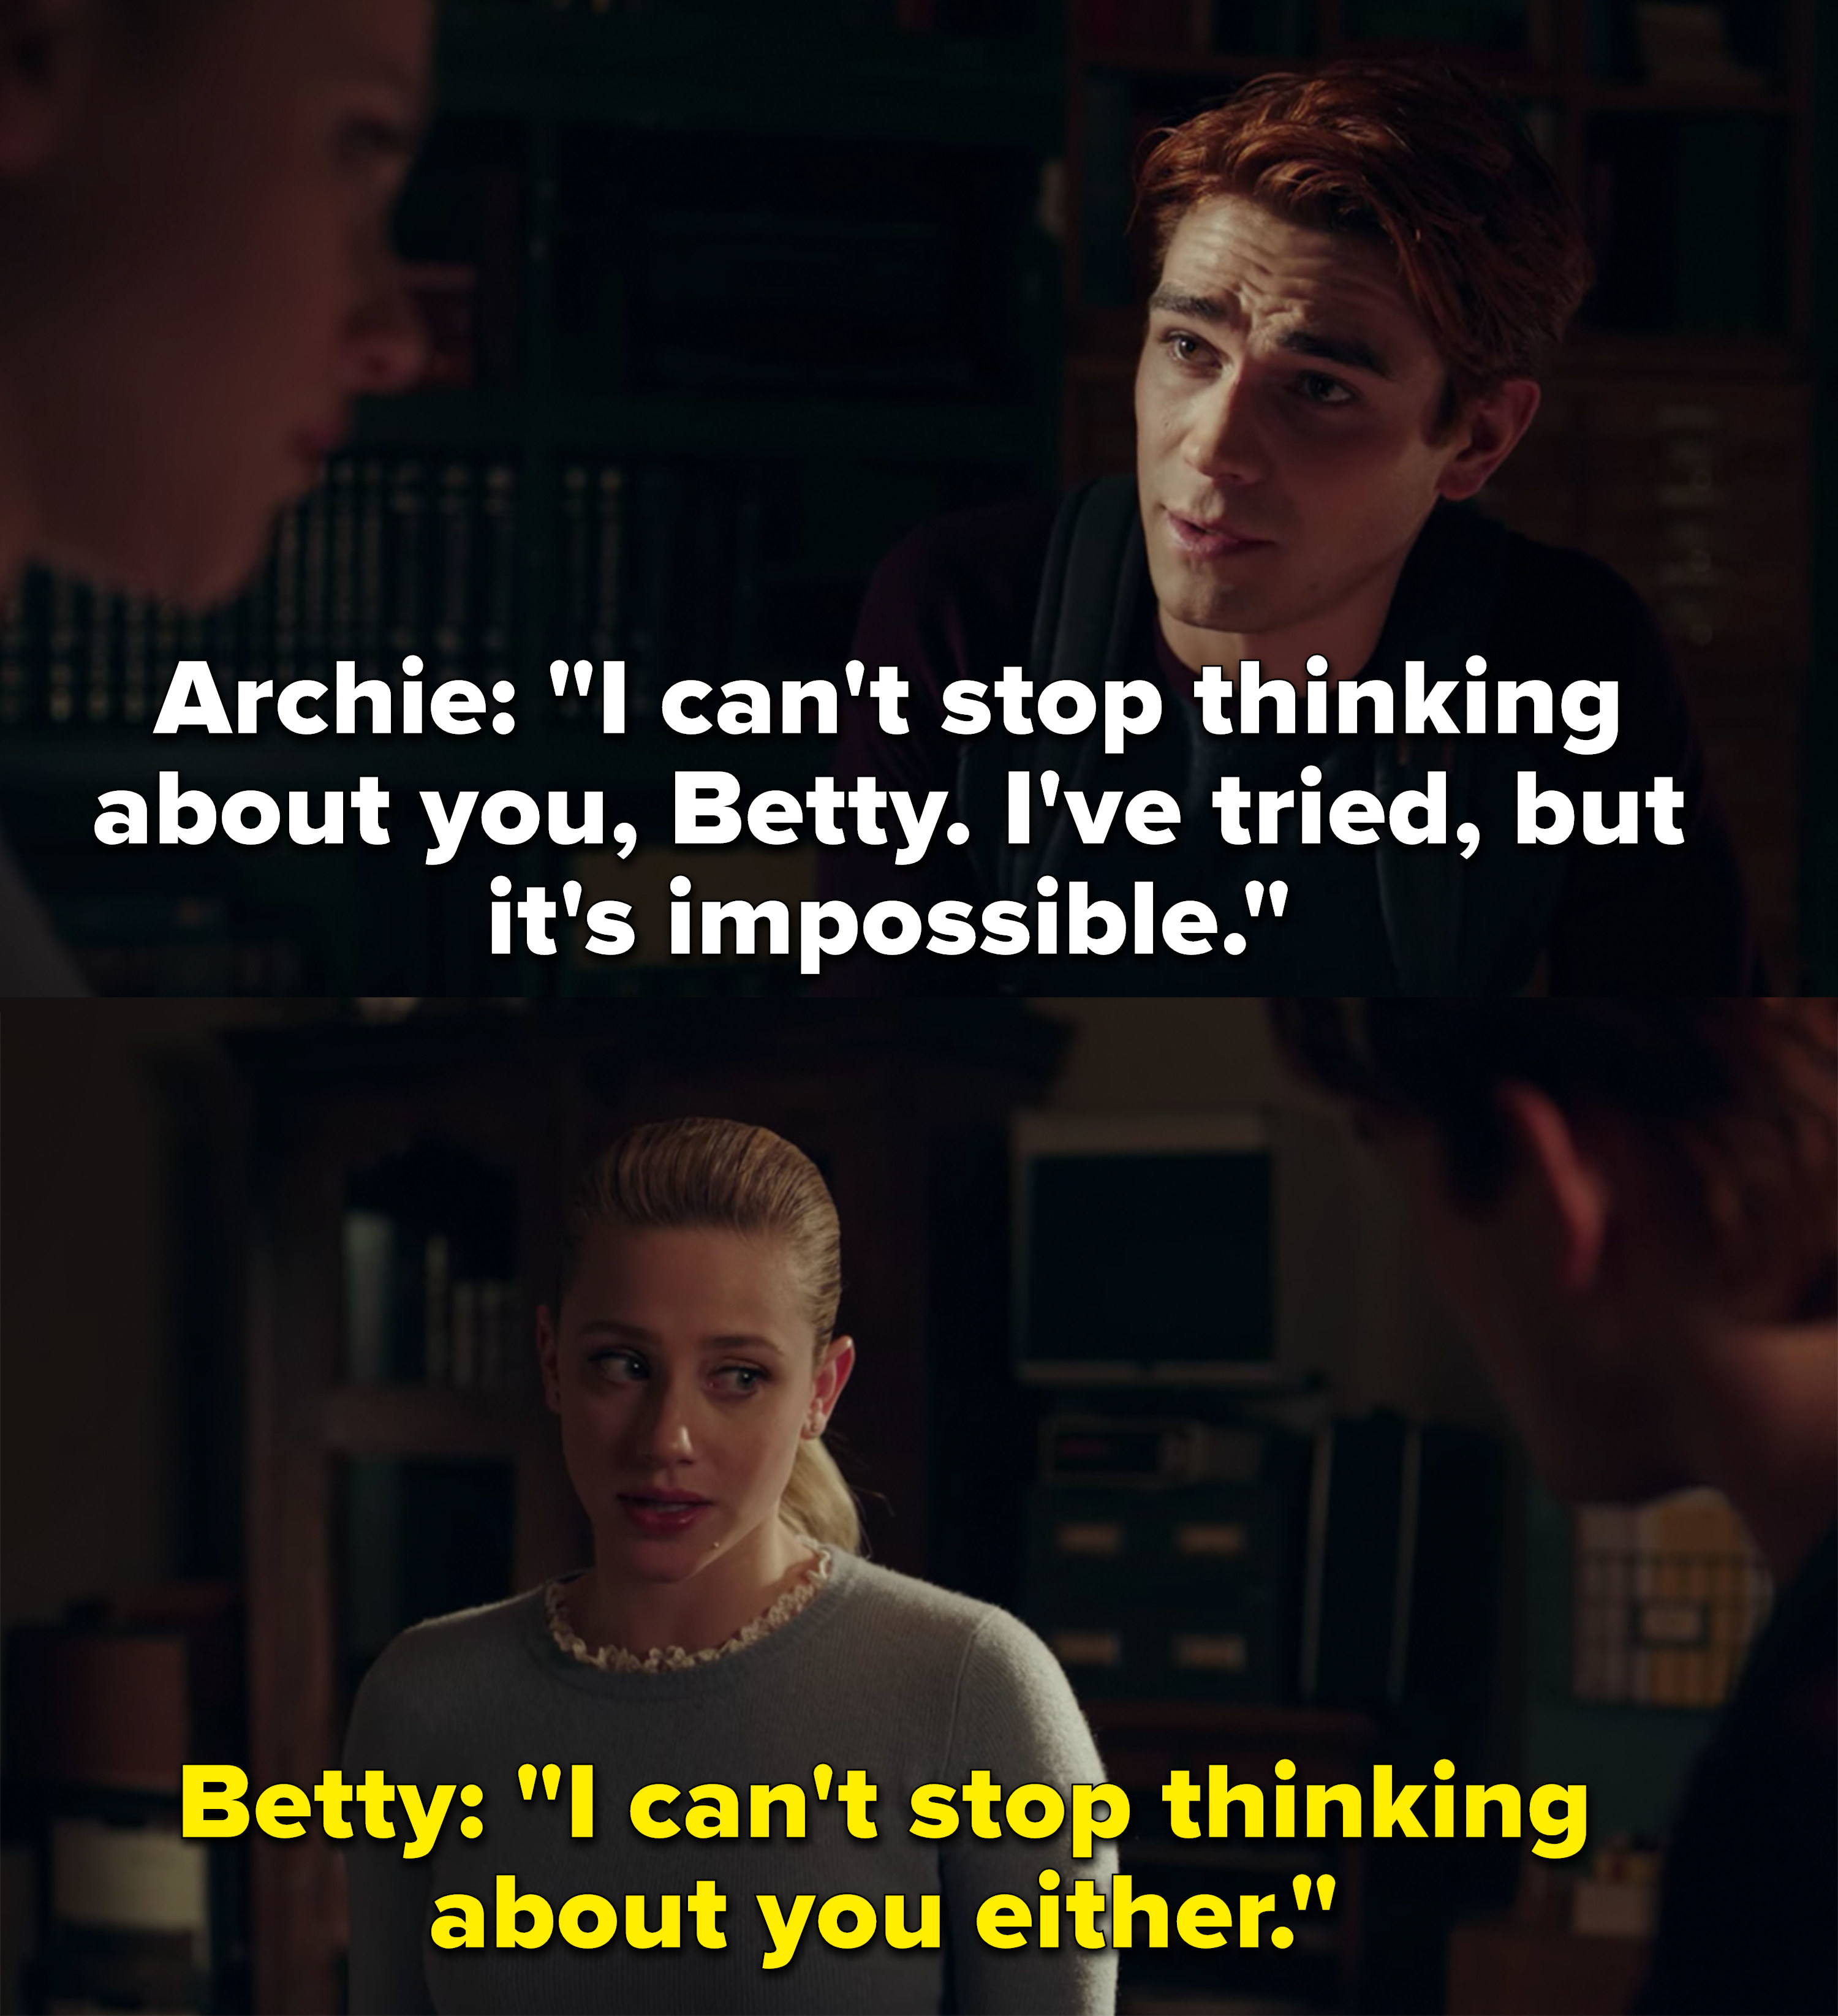 Archie and Betty say they can't stop thinking about each other